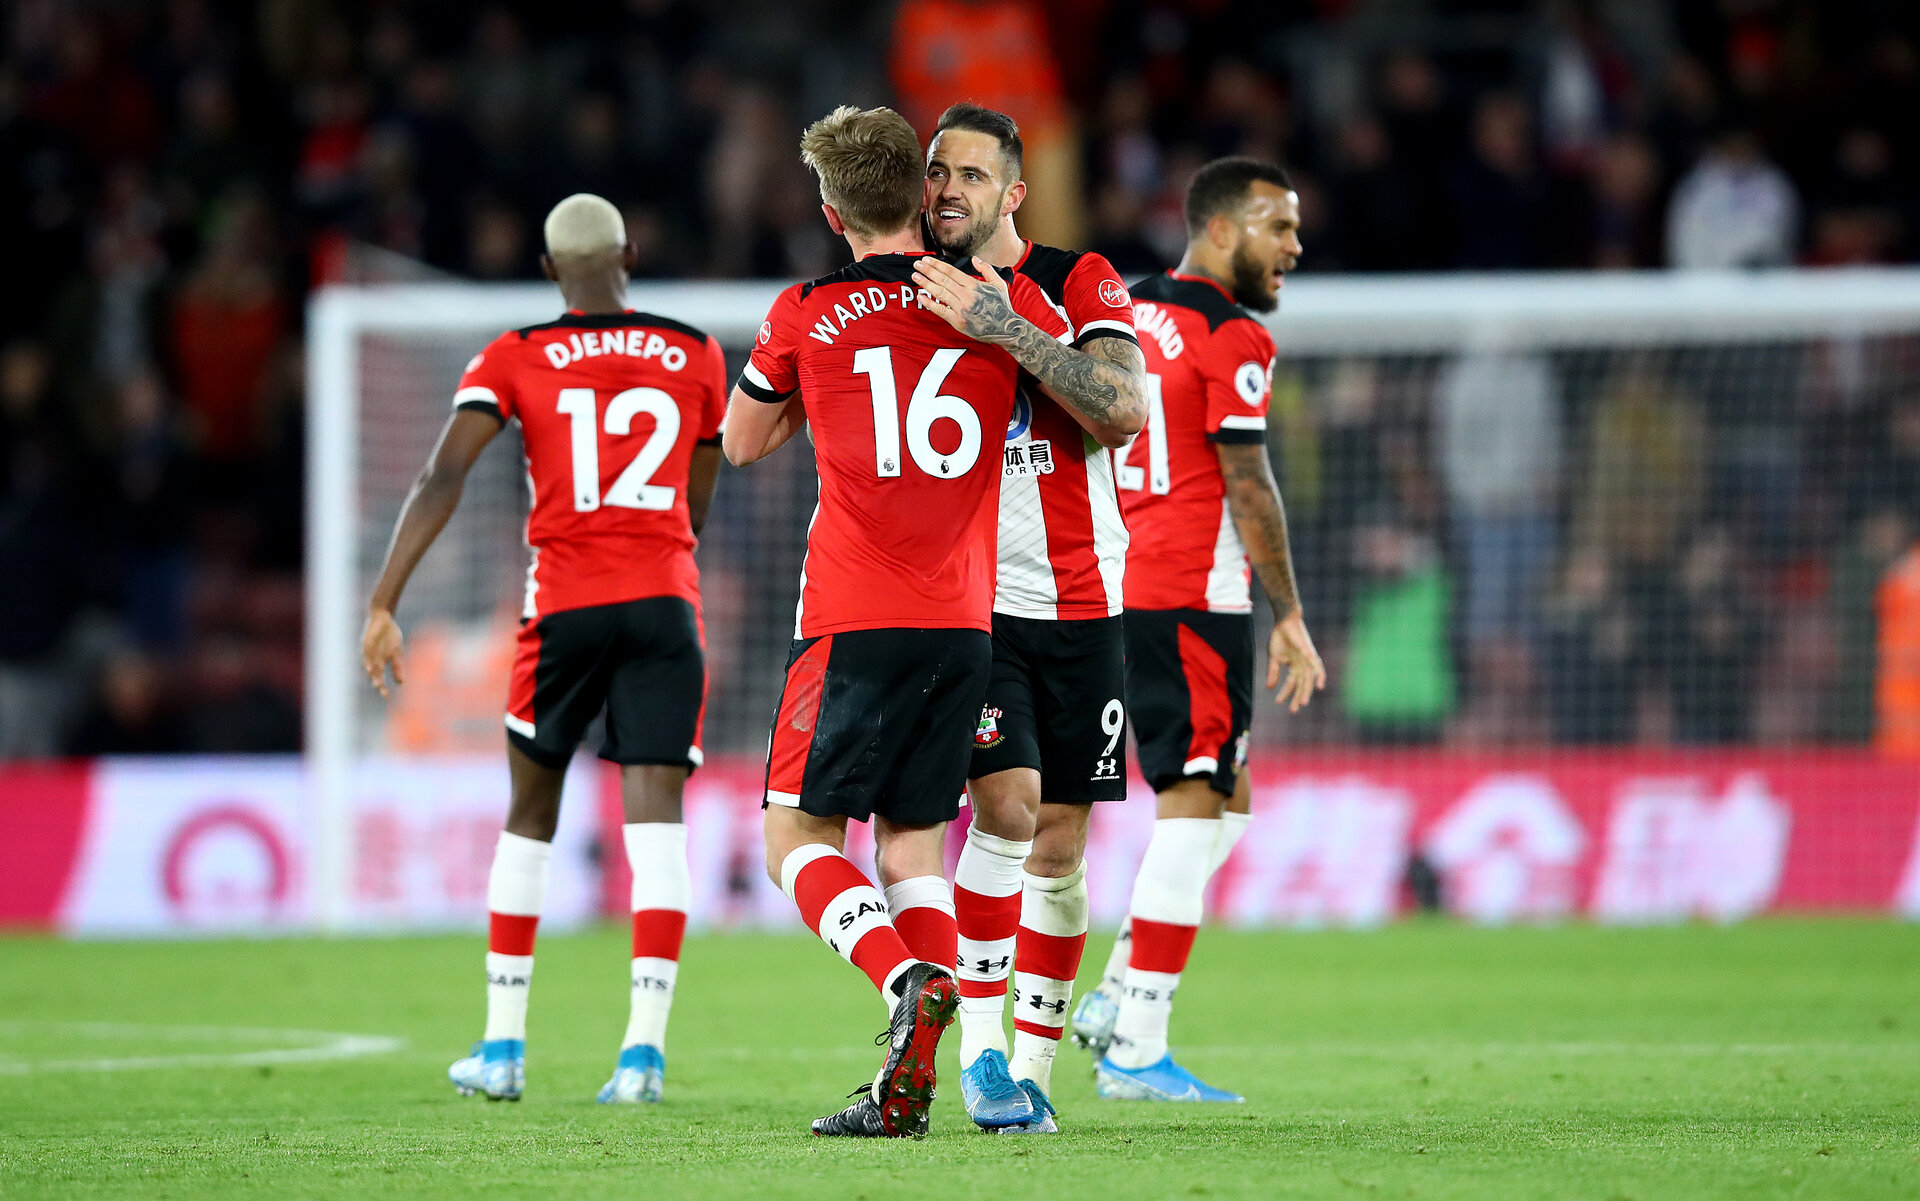 SOUTHAMPTON, ENGLAND - NOVEMBER 30: Danny Ings and James Ward-Prowse(16) of Southampton celebrates during the Premier League match between Southampton FC and Watford FC at St Mary's Stadium on November 30, 2019 in Southampton, United Kingdom. (Photo by Matt Watson/Southampton FC via Getty Images)